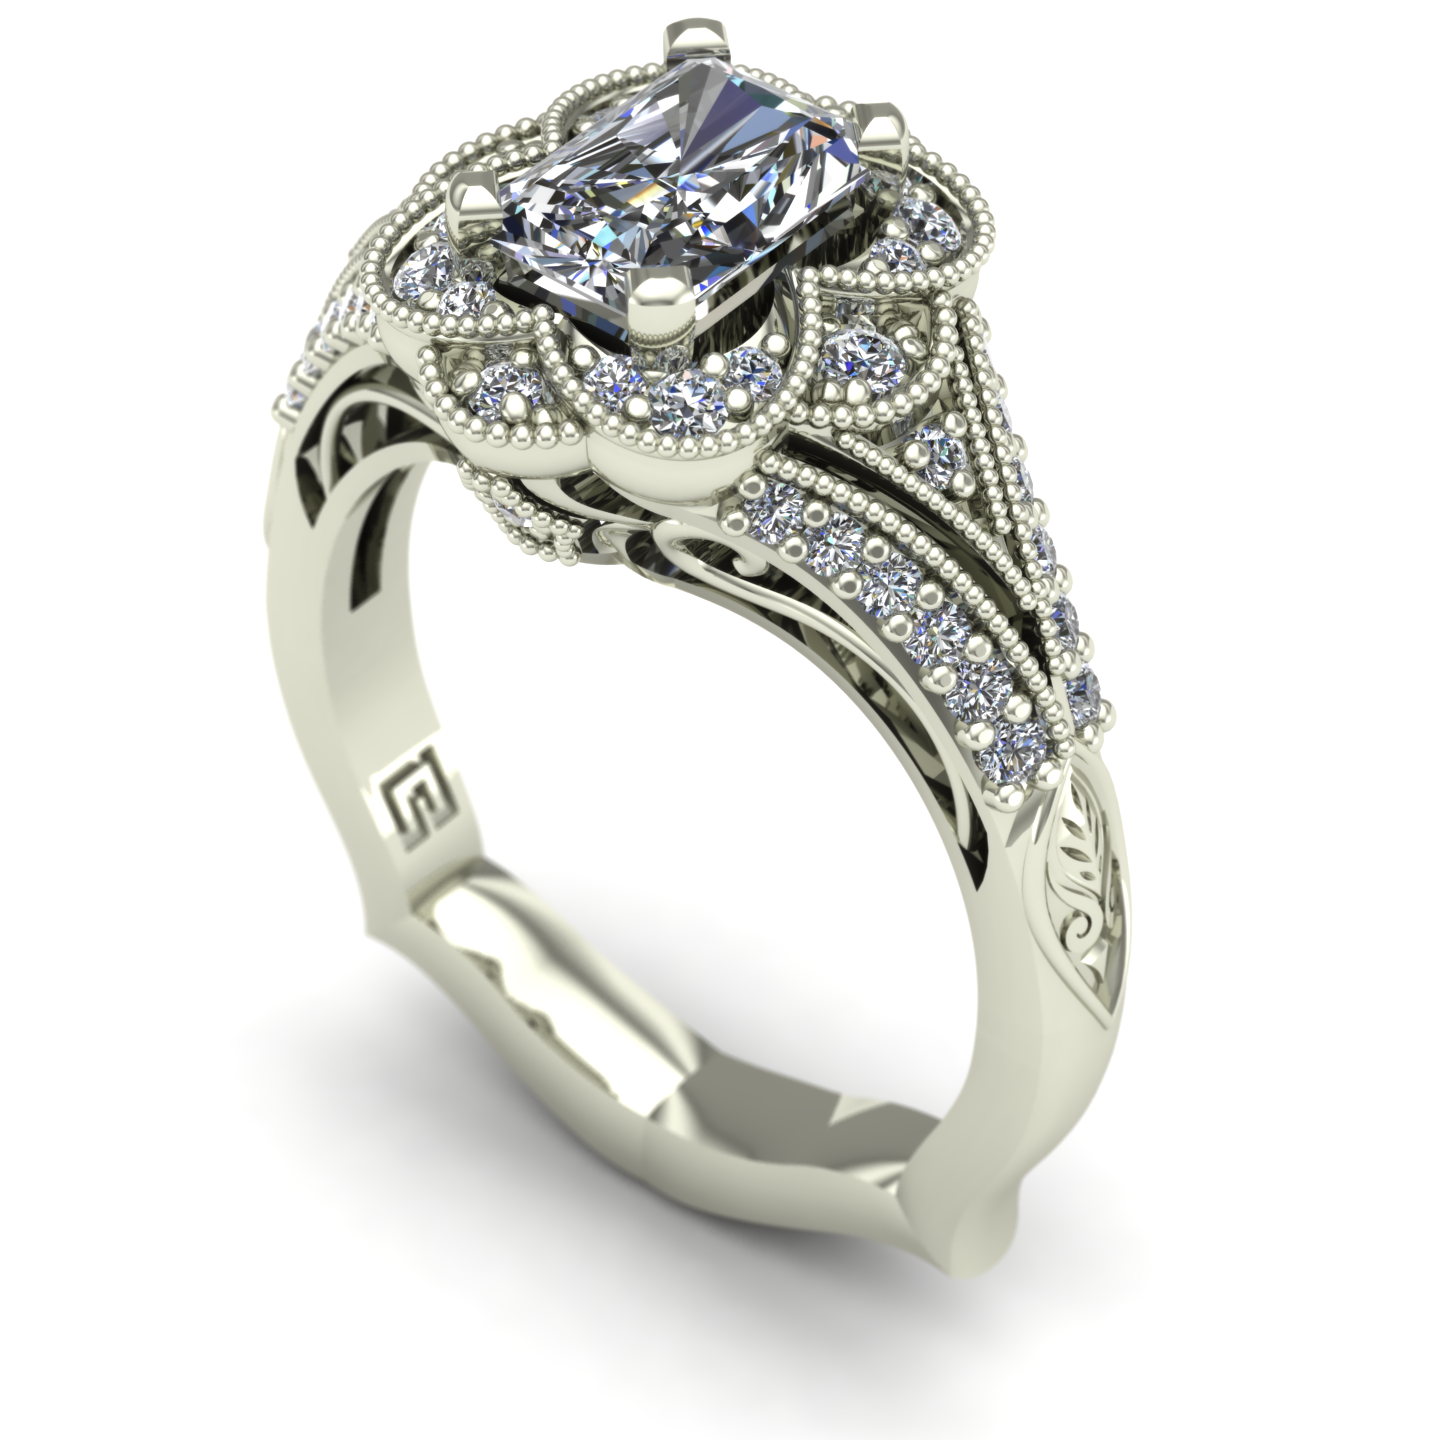 Radiant-cut diamond engagement ring in 14k white gold